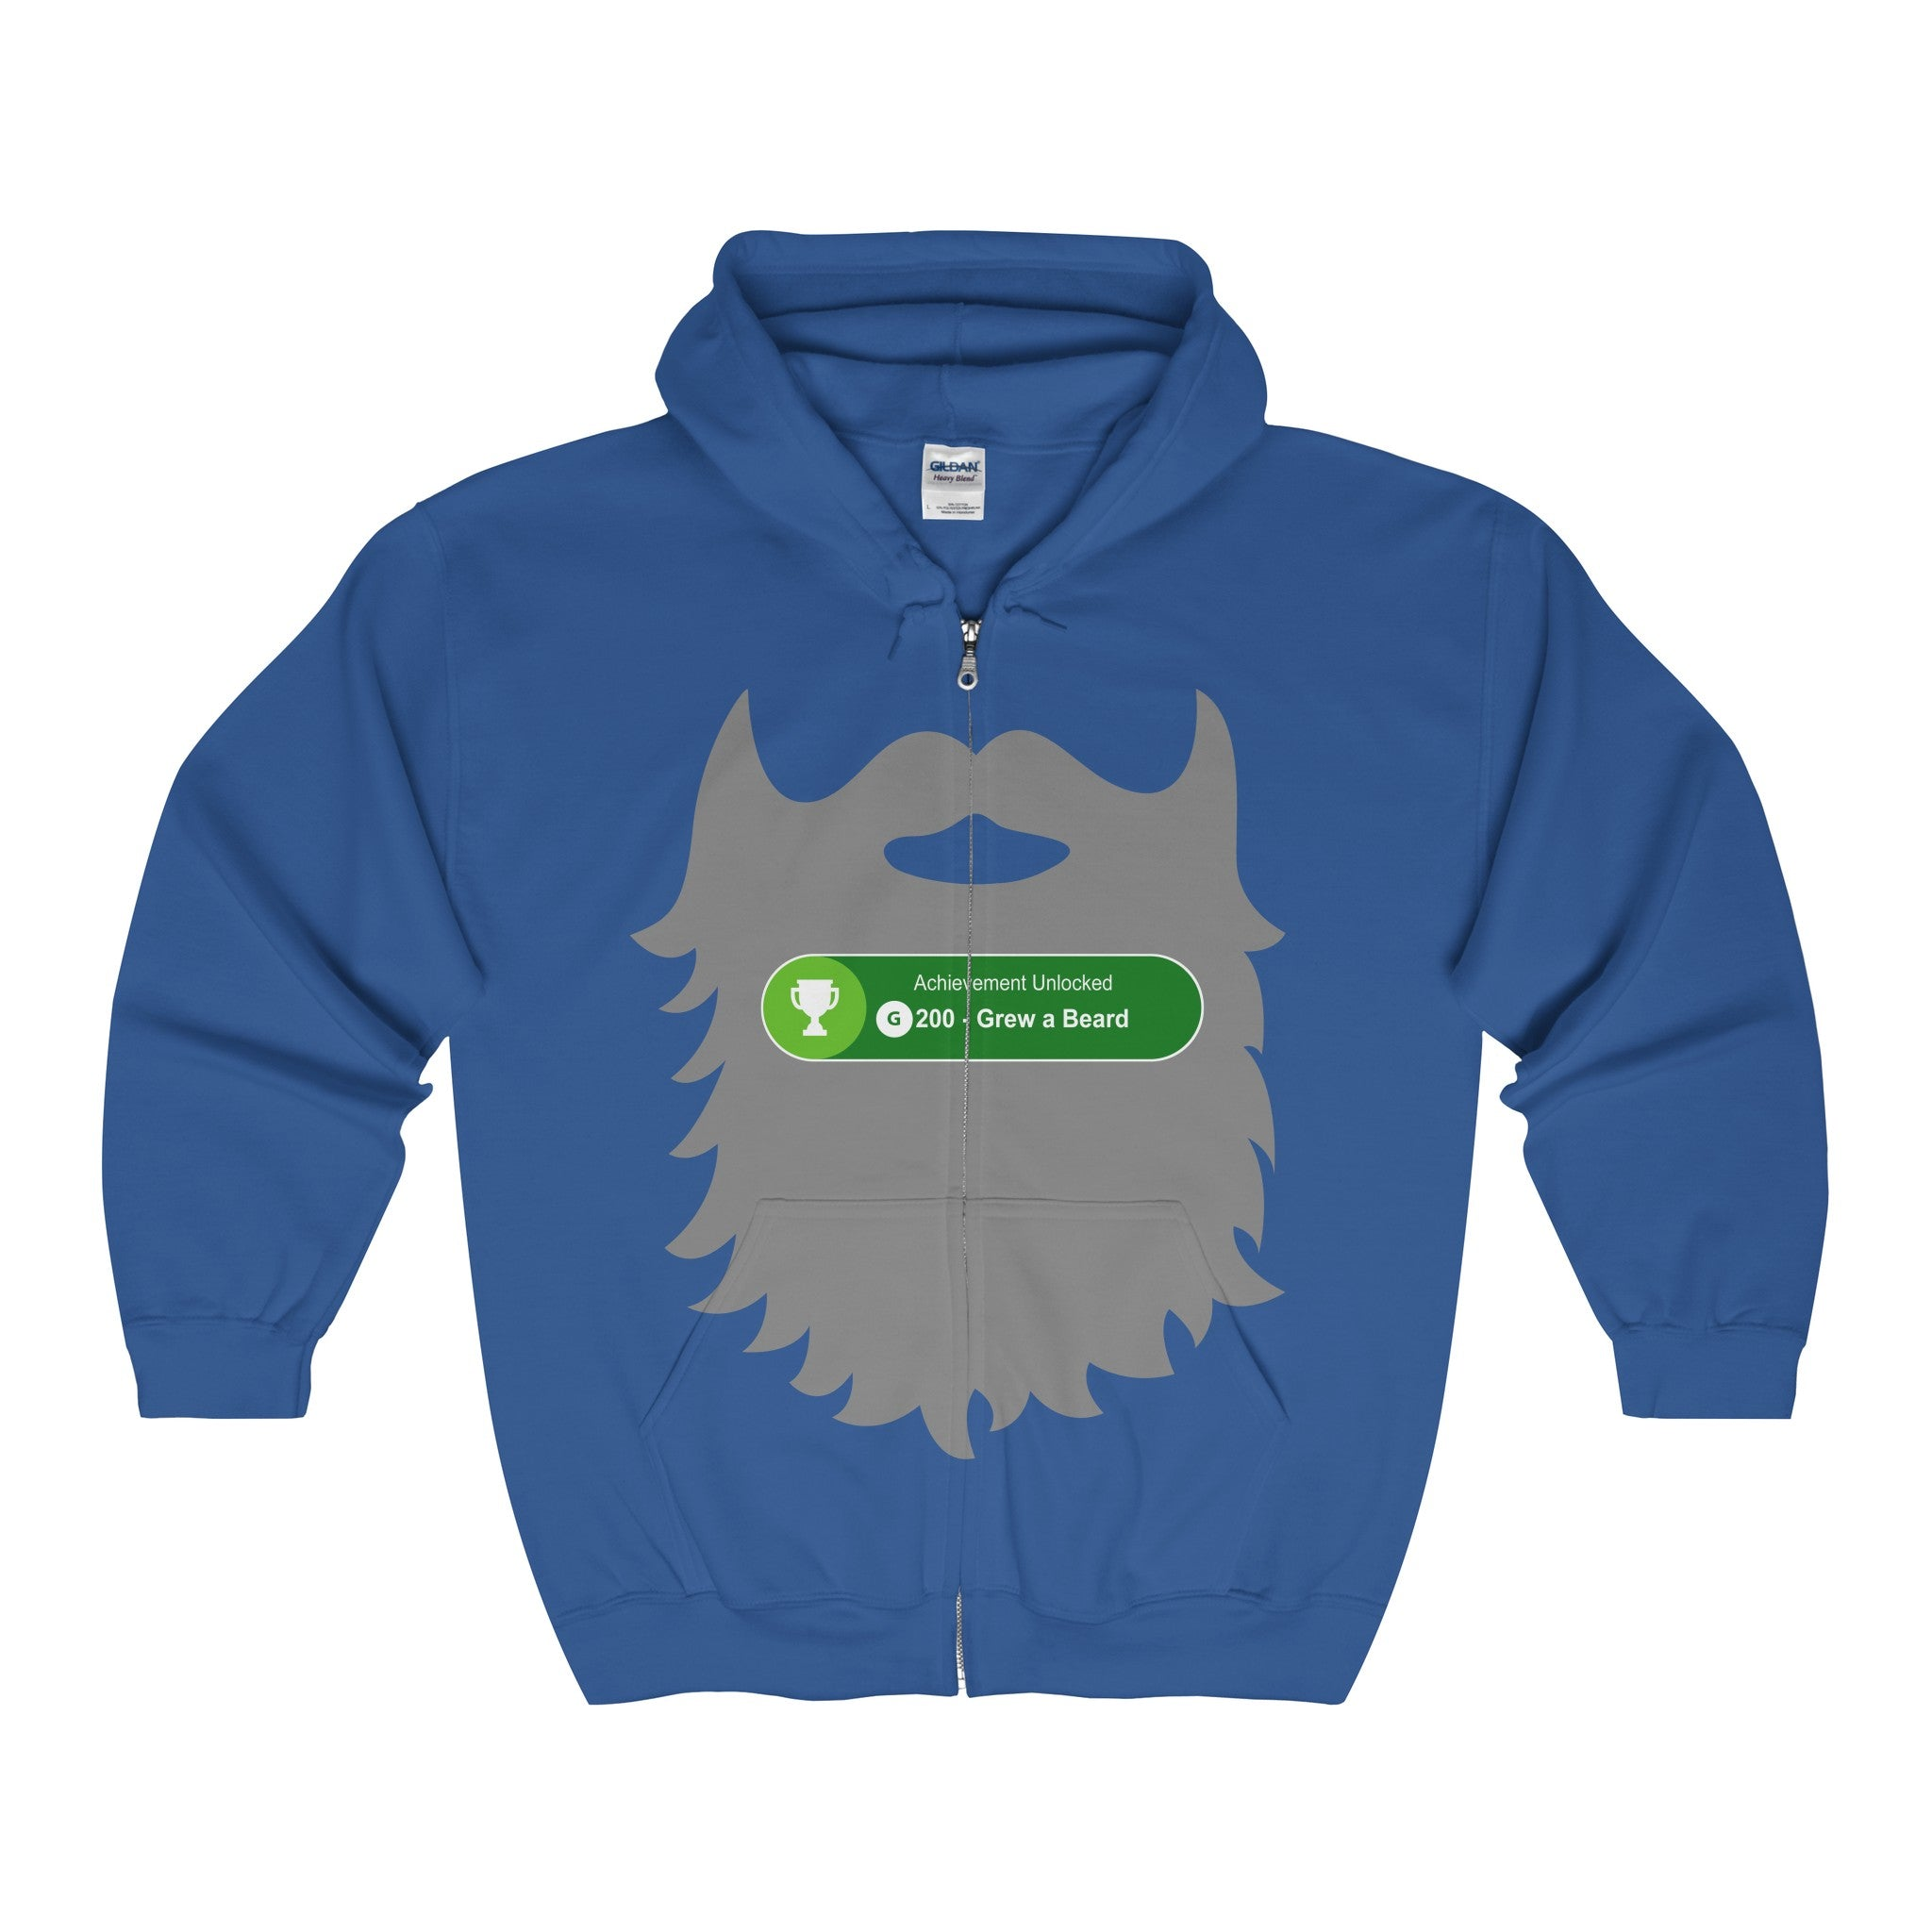 achievement unlocked xbox gaming grew beard men's unisex zip hoodie